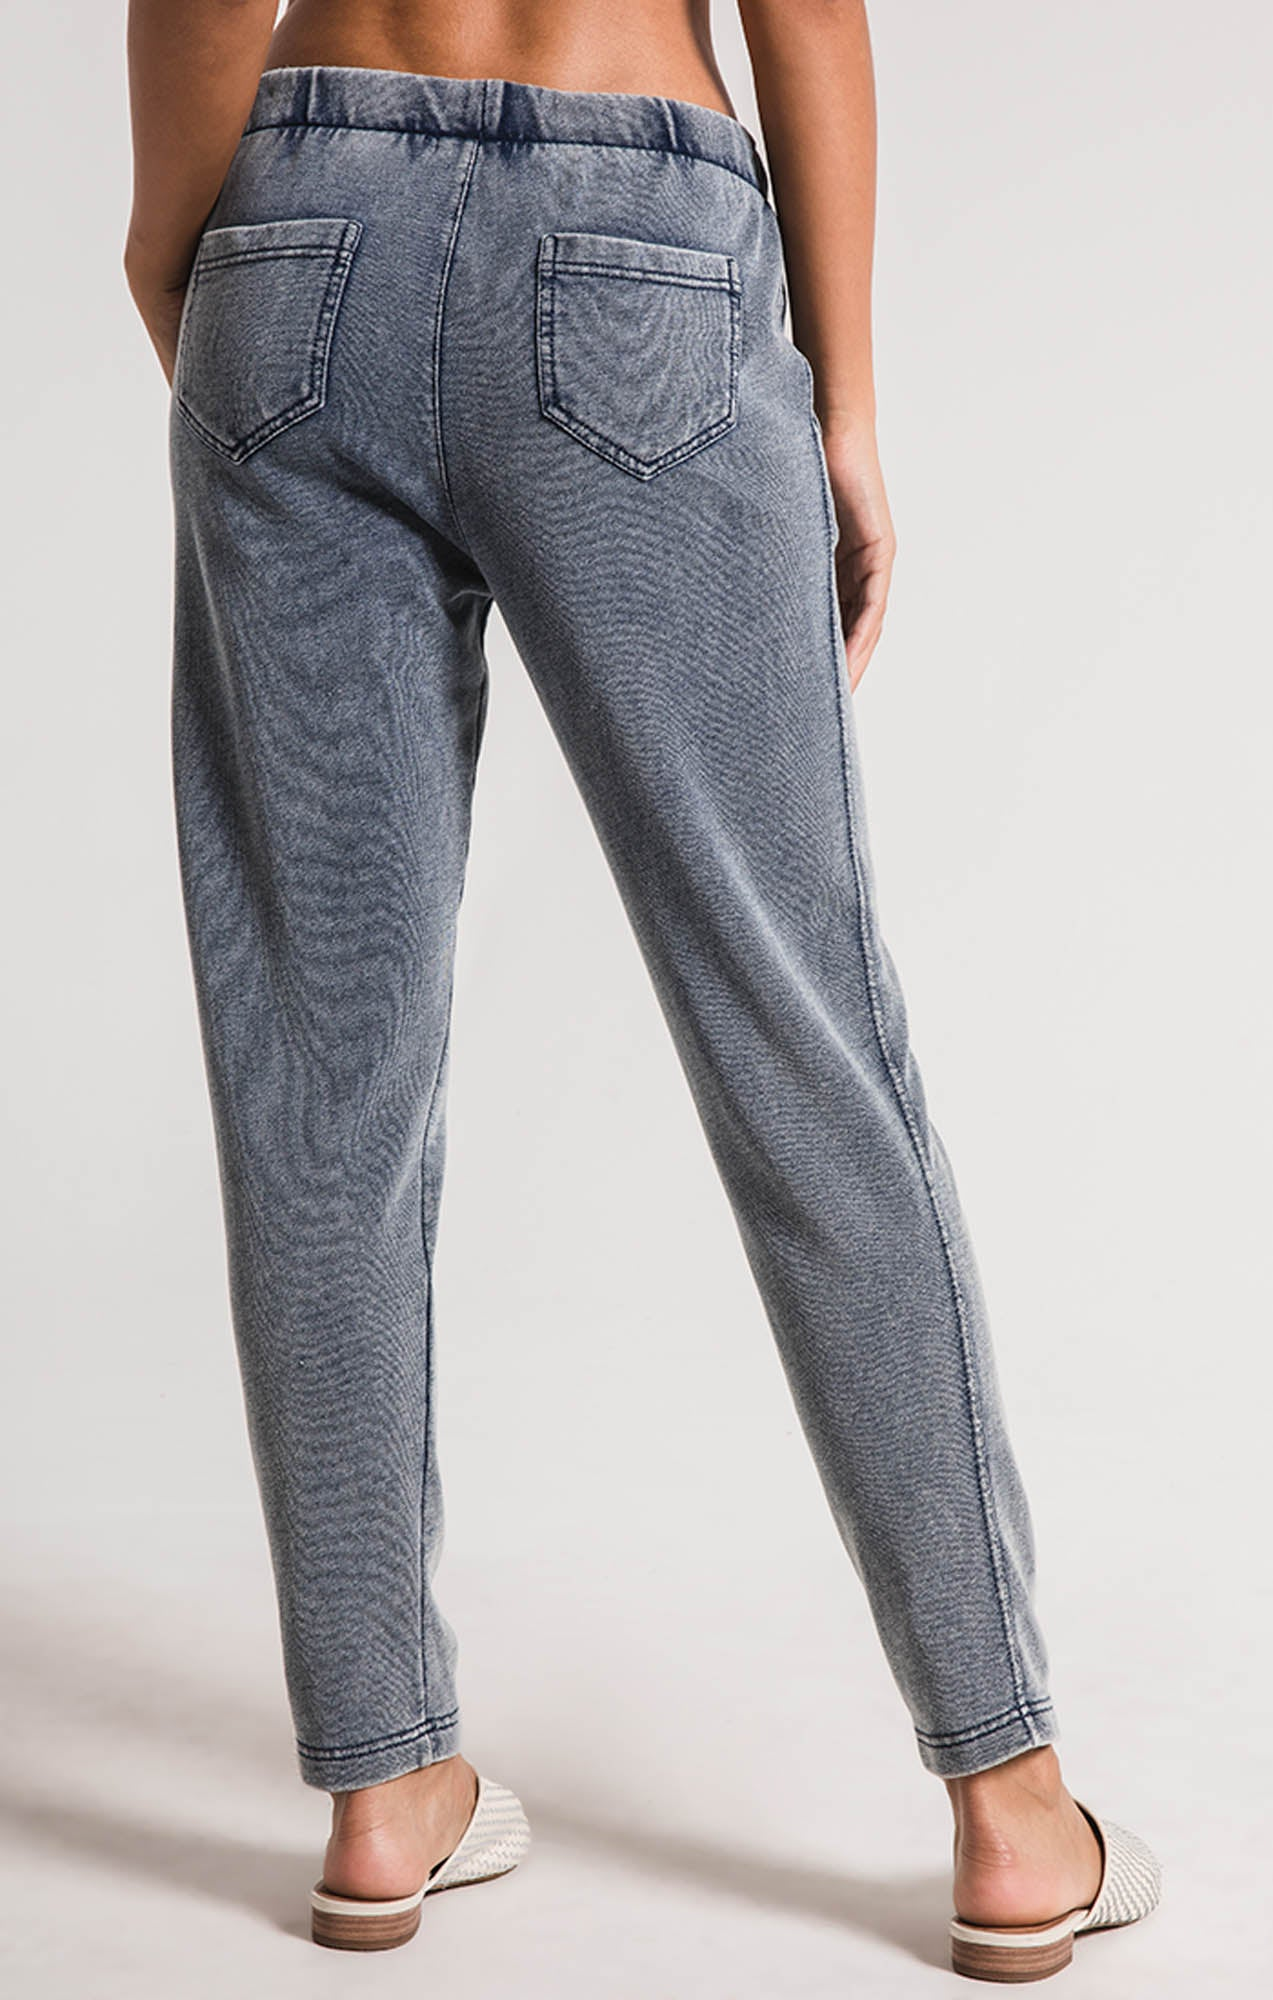 Pants The Knit Denim Jogger Indigo